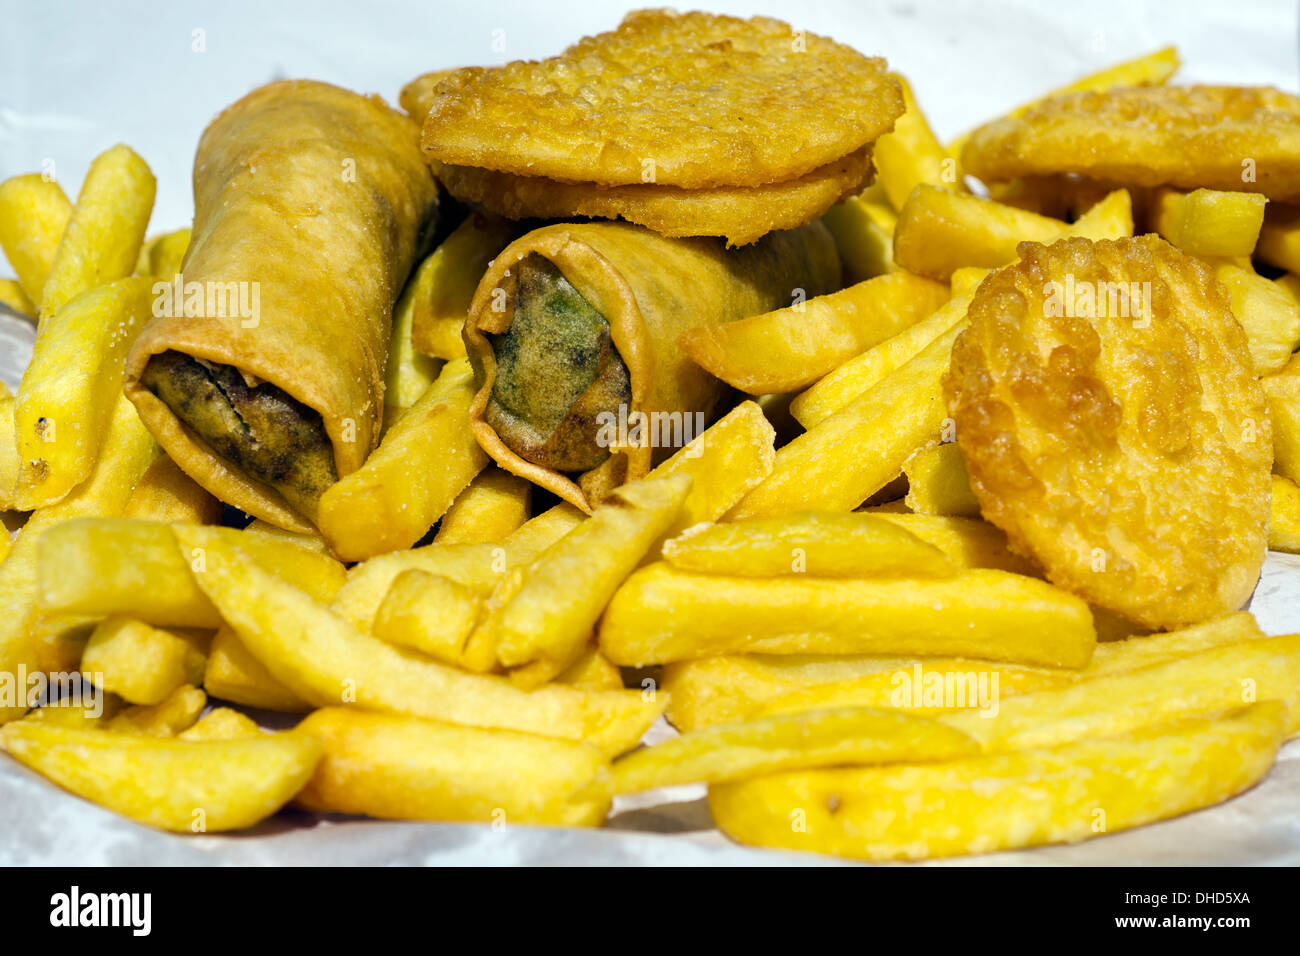 Chips potato, fritters and spring rolls fast food takeaway meal dish outdoor. - Stock Image